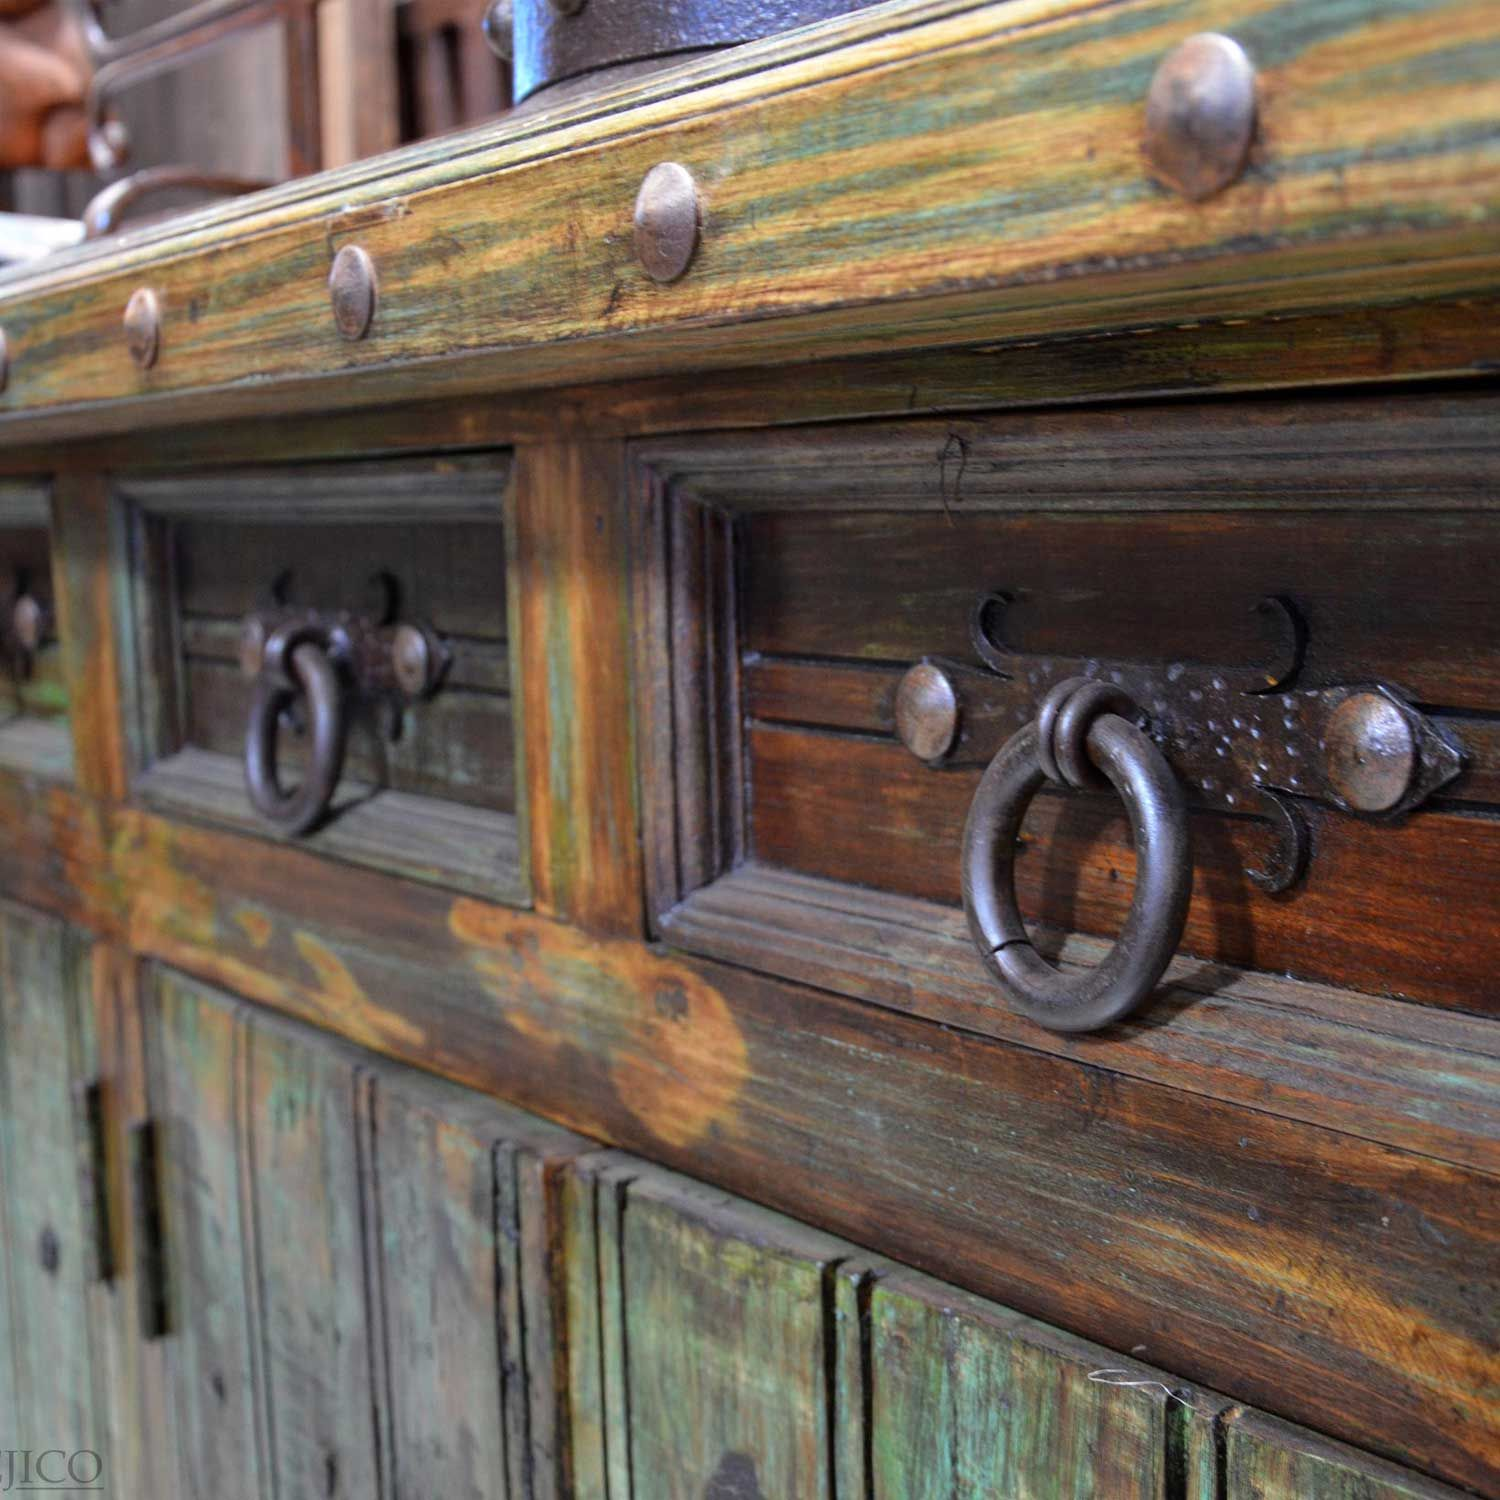 Kitchen Cabinets Knobs Or Pulls Rustic Cabinet Hardware Bail Pulls Iron Cabinet Pull